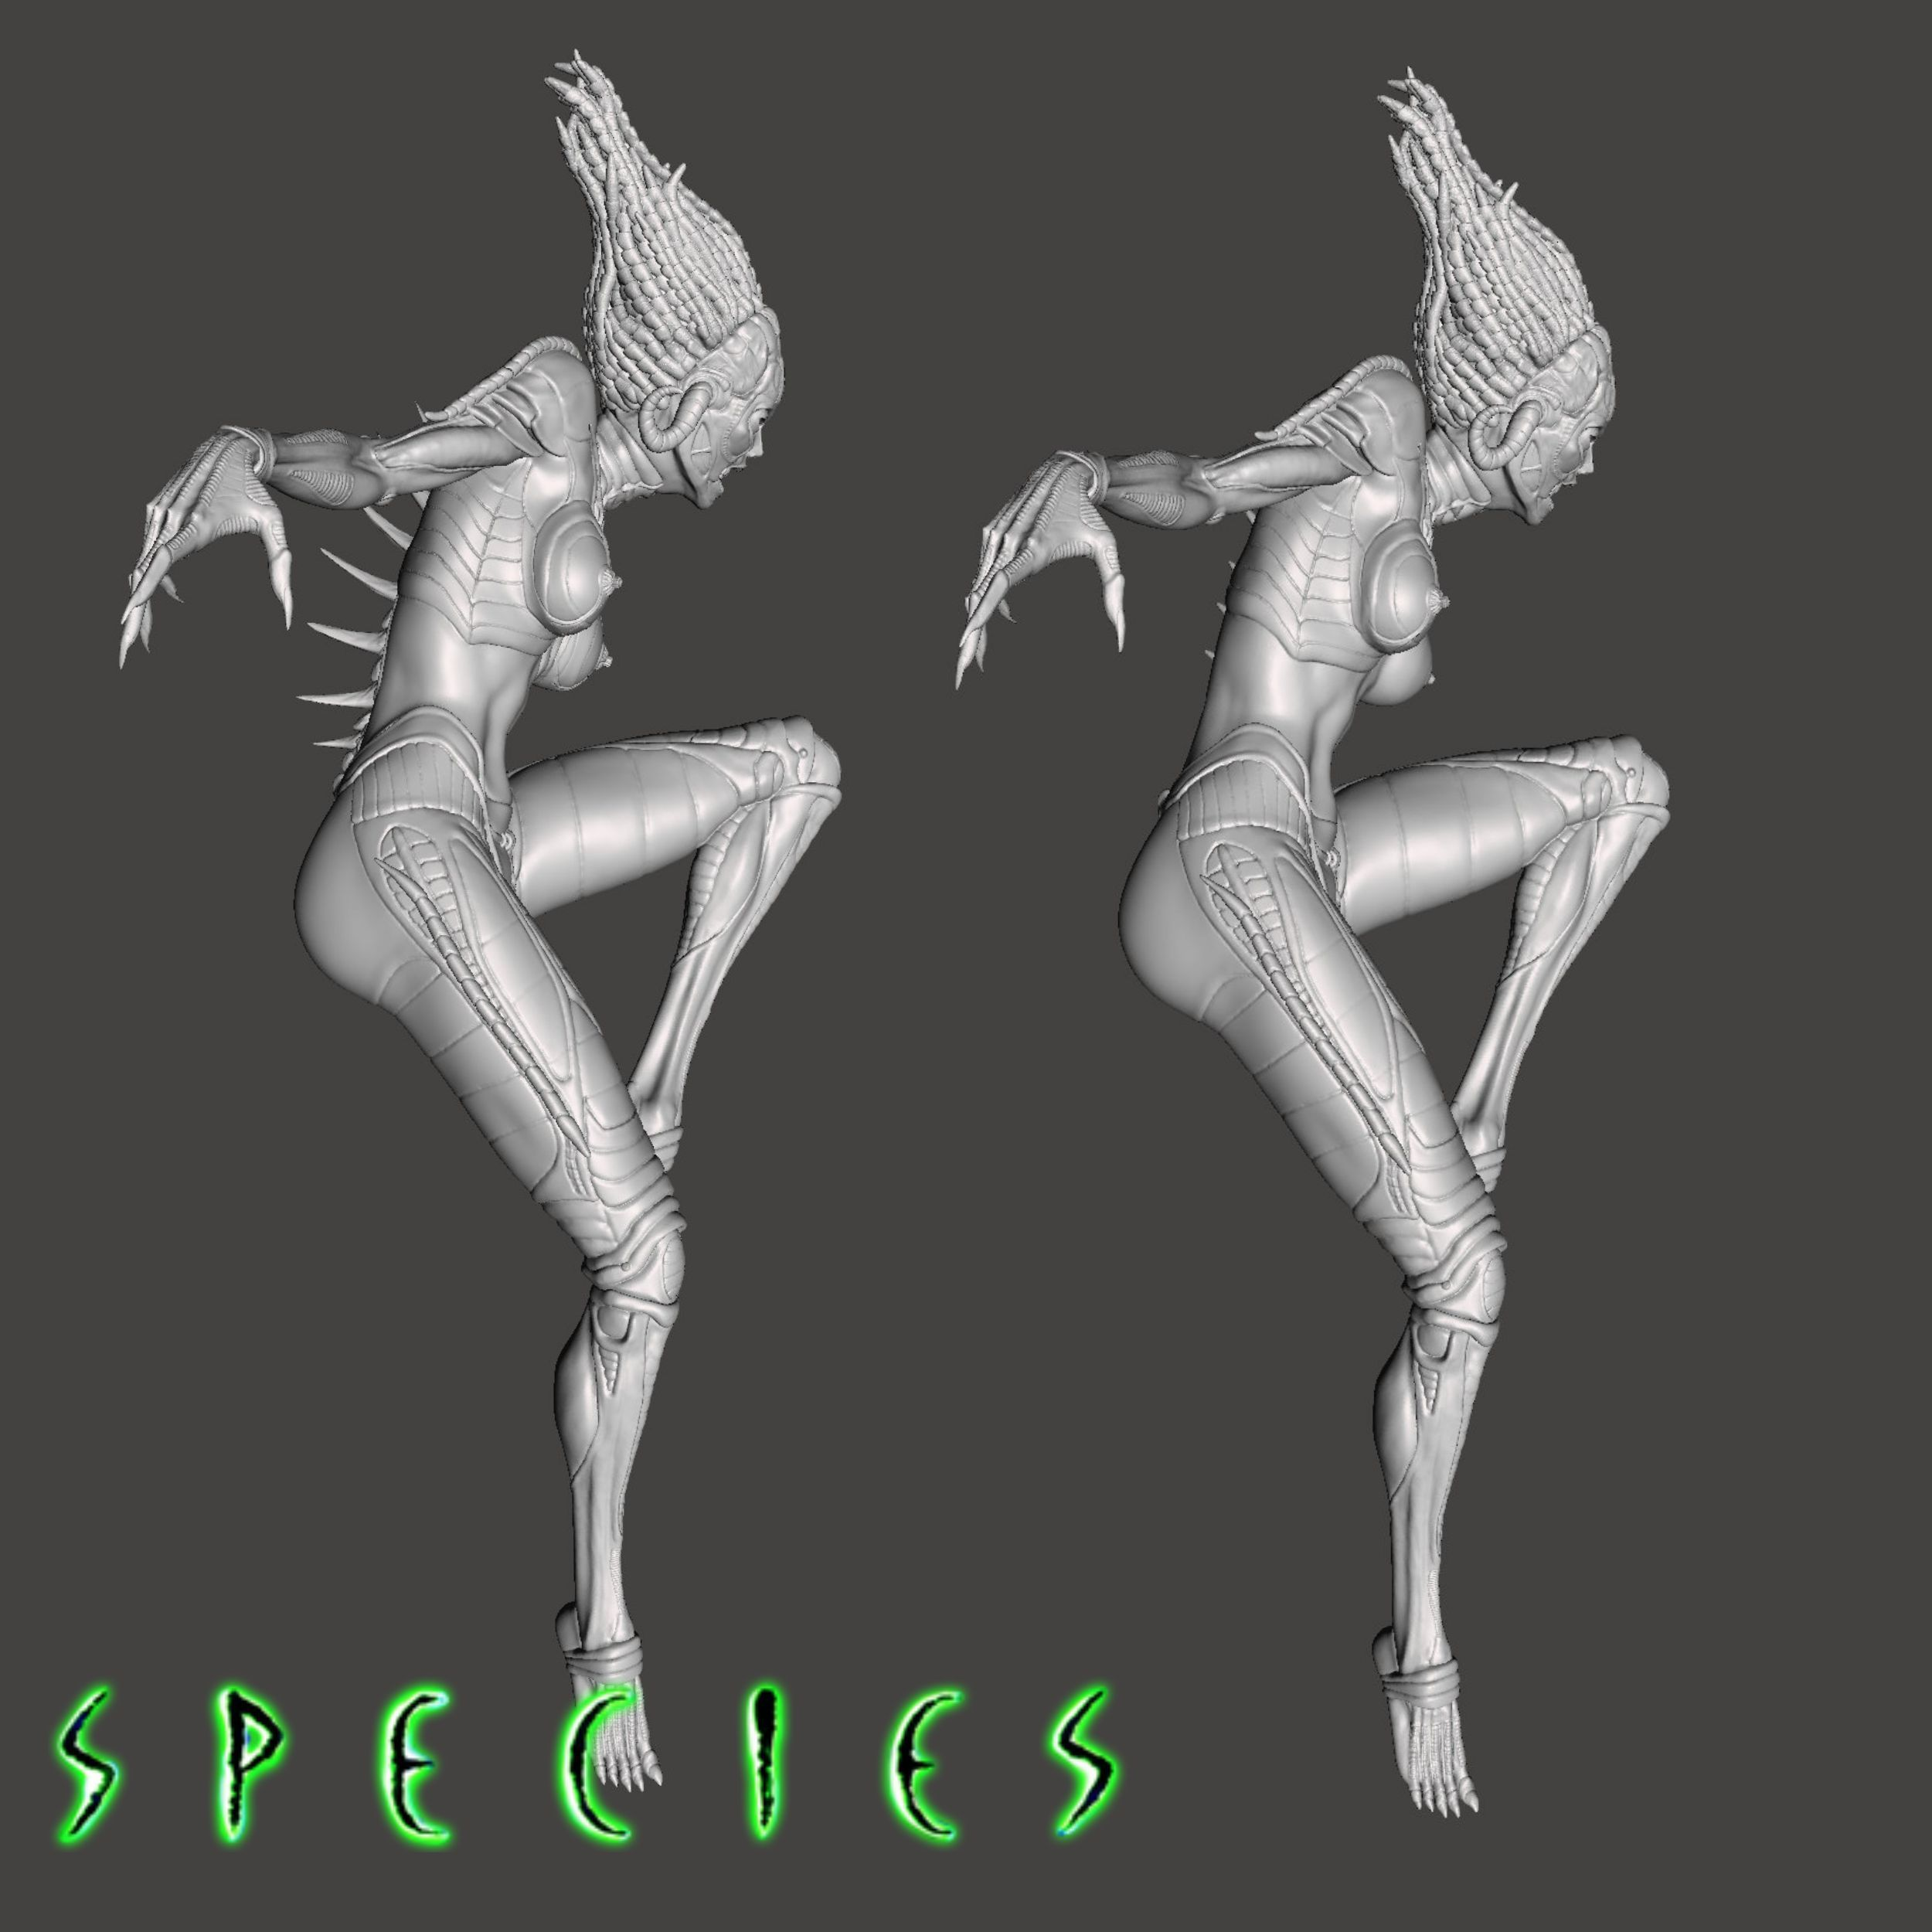 Image15.jpg Download STL file Alien Girl - SPECIES Part 1- by SPARX • 3D printable object, wikd2011